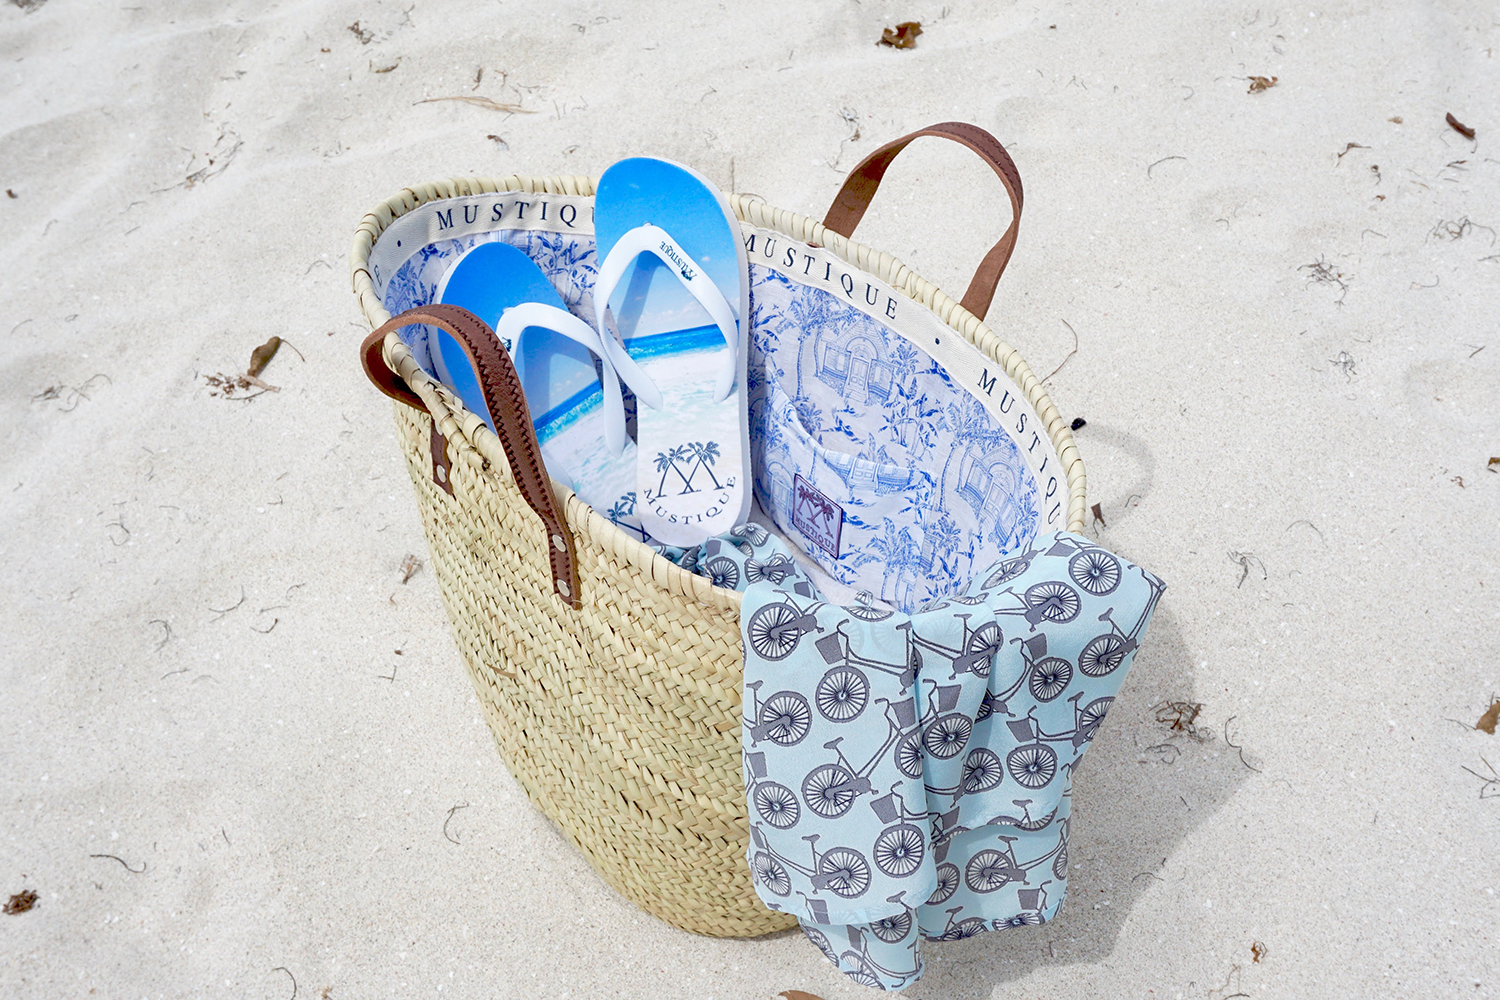 Mens, womens & childrens beach shoes & flip flops brought to you from Mustique